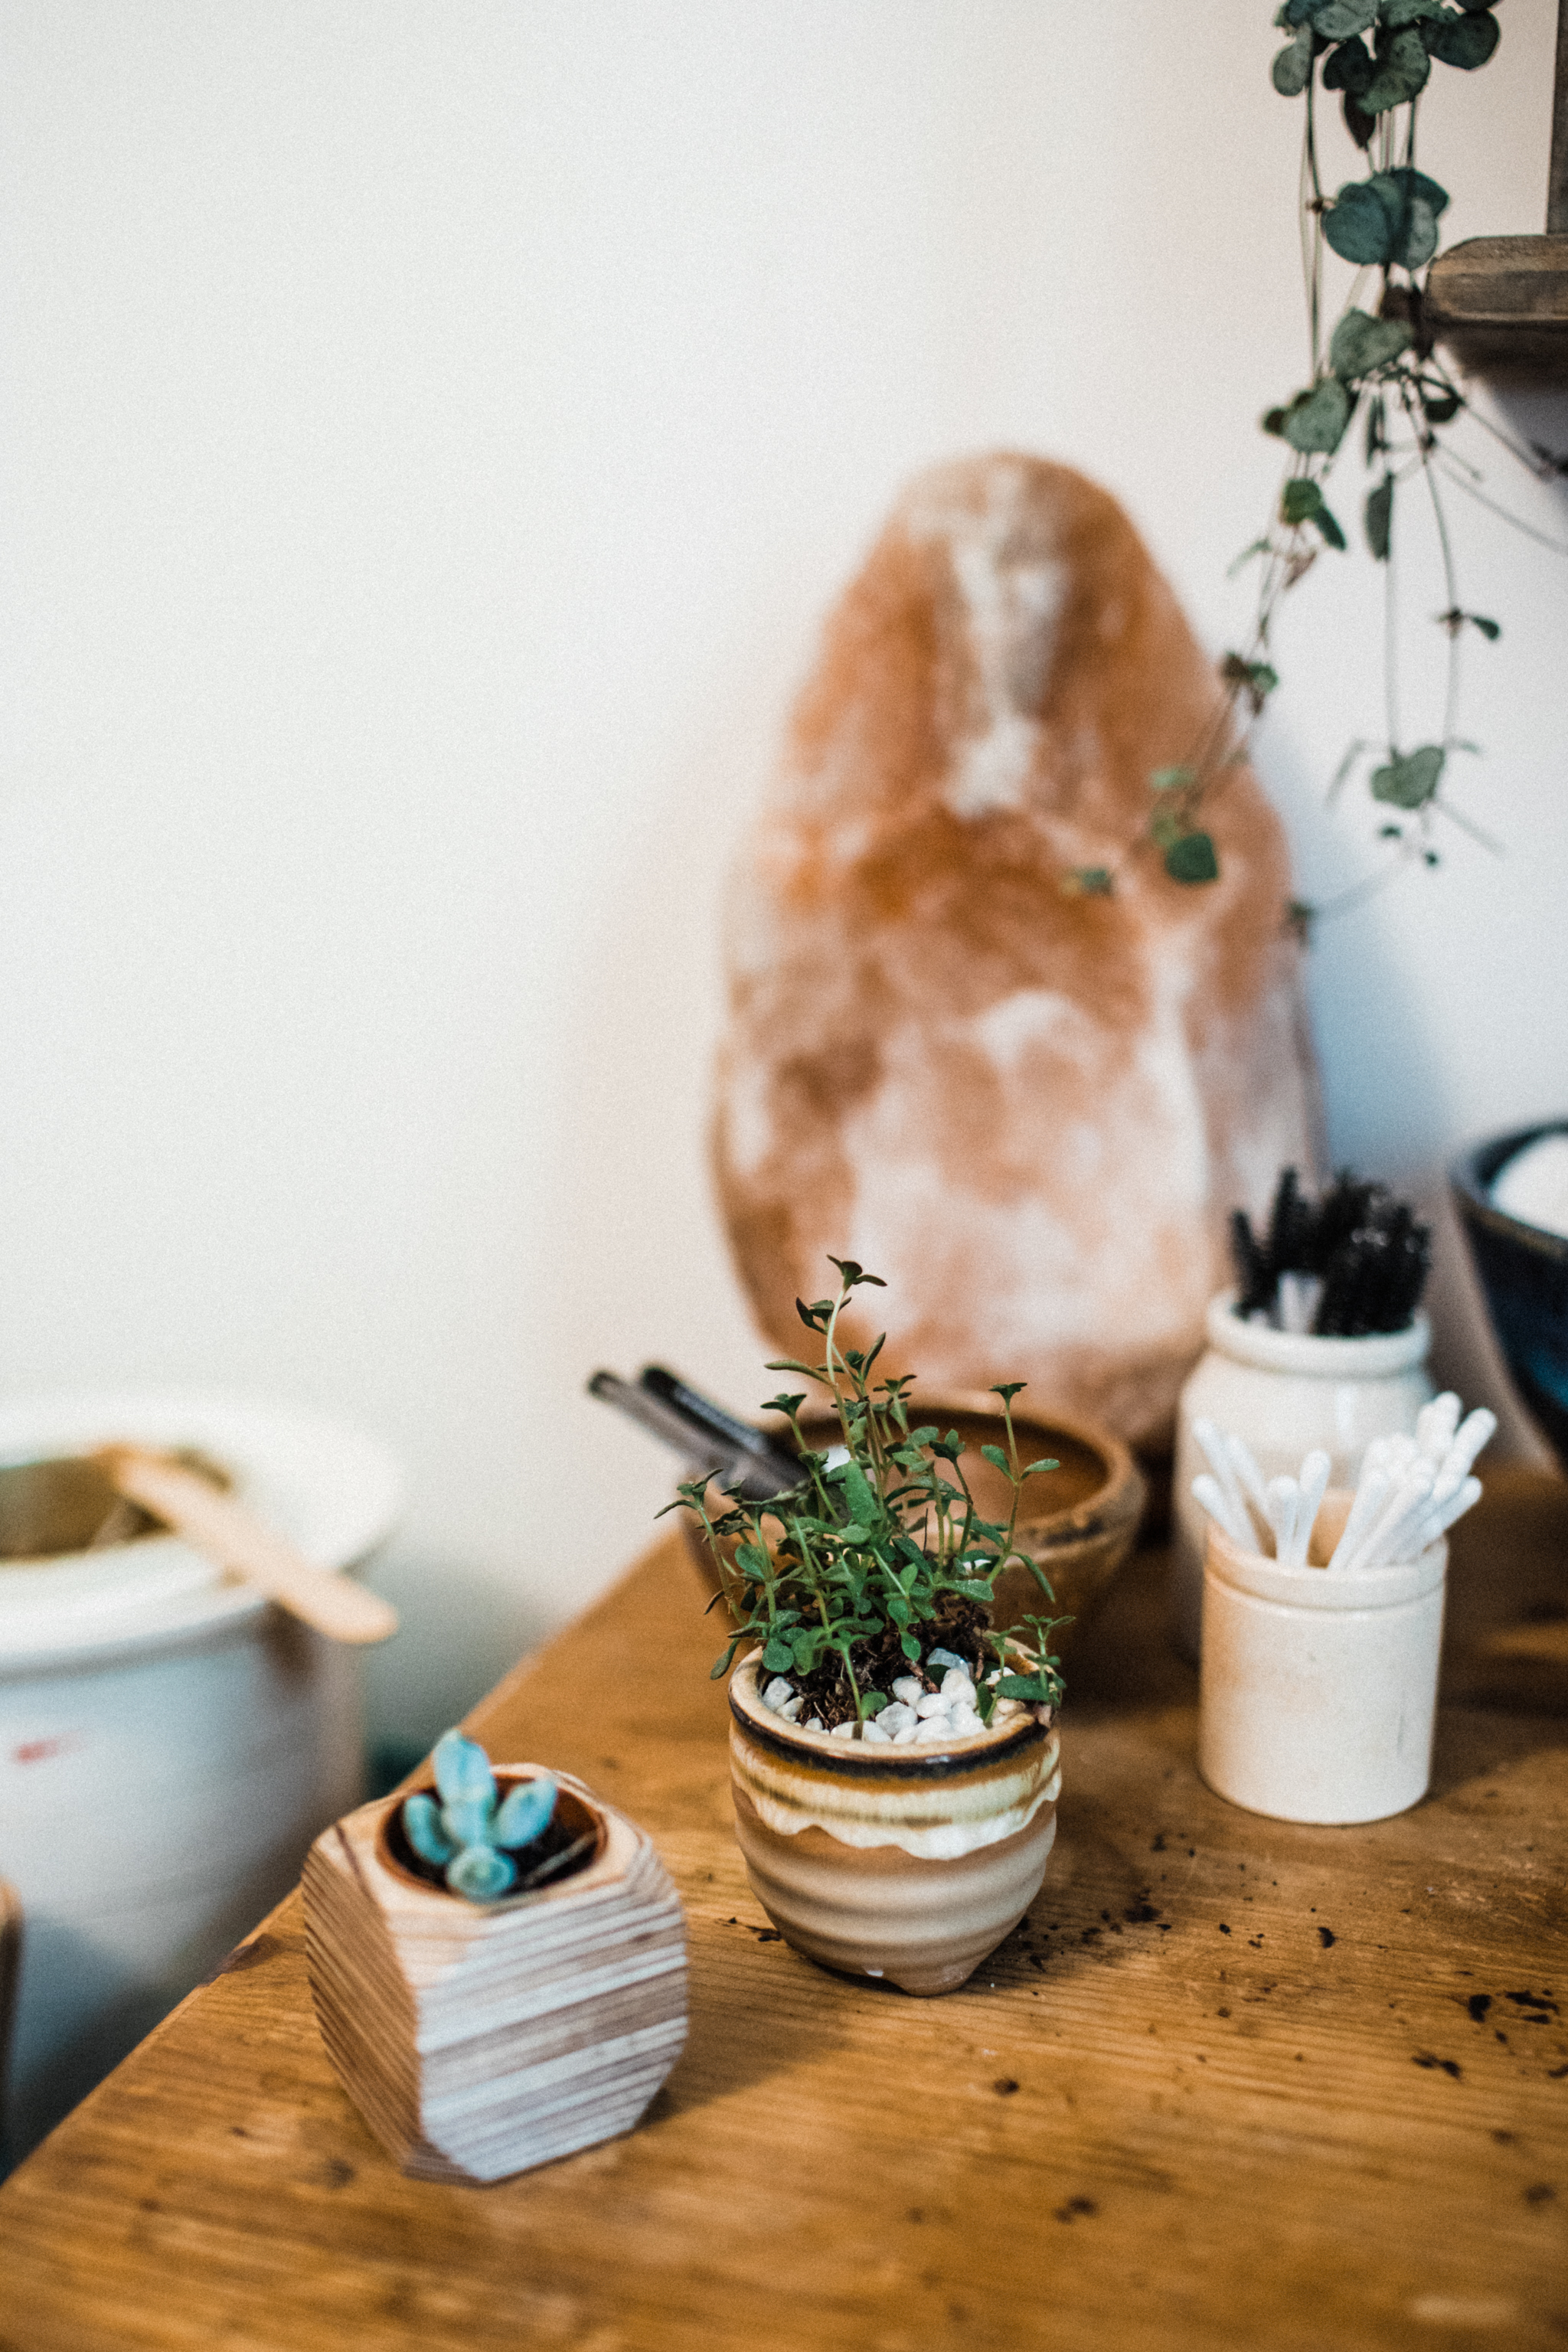 Succulents and houseplants